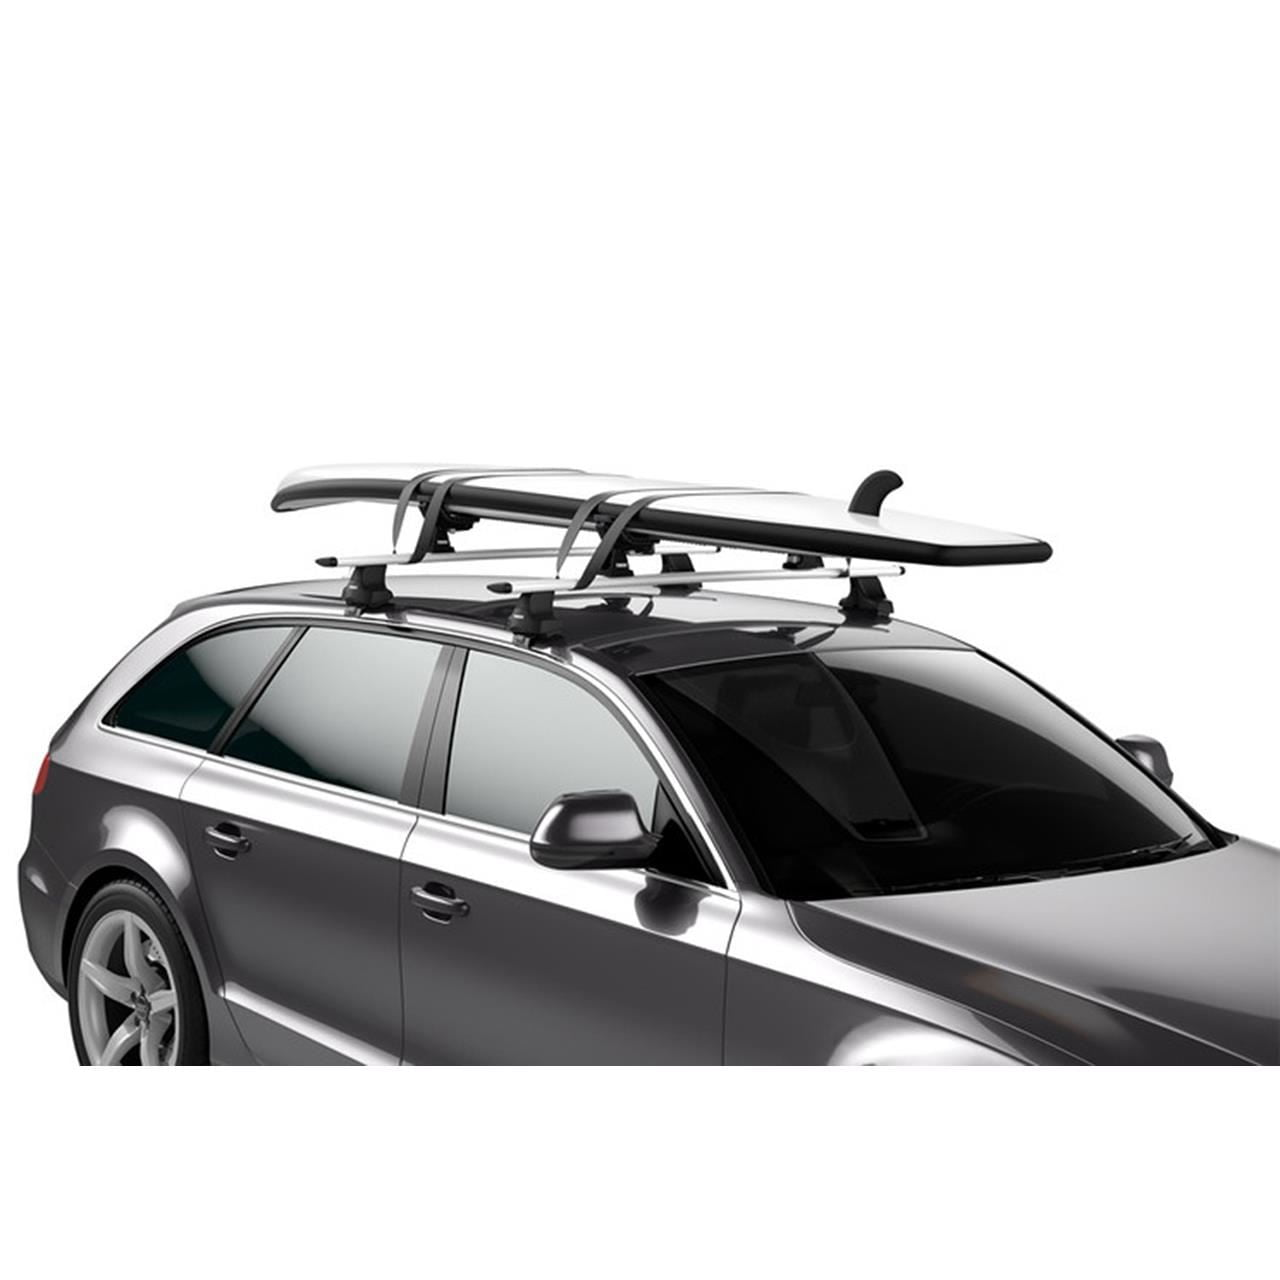 Suport transport echipament nautic Thule DockGrip 895 4